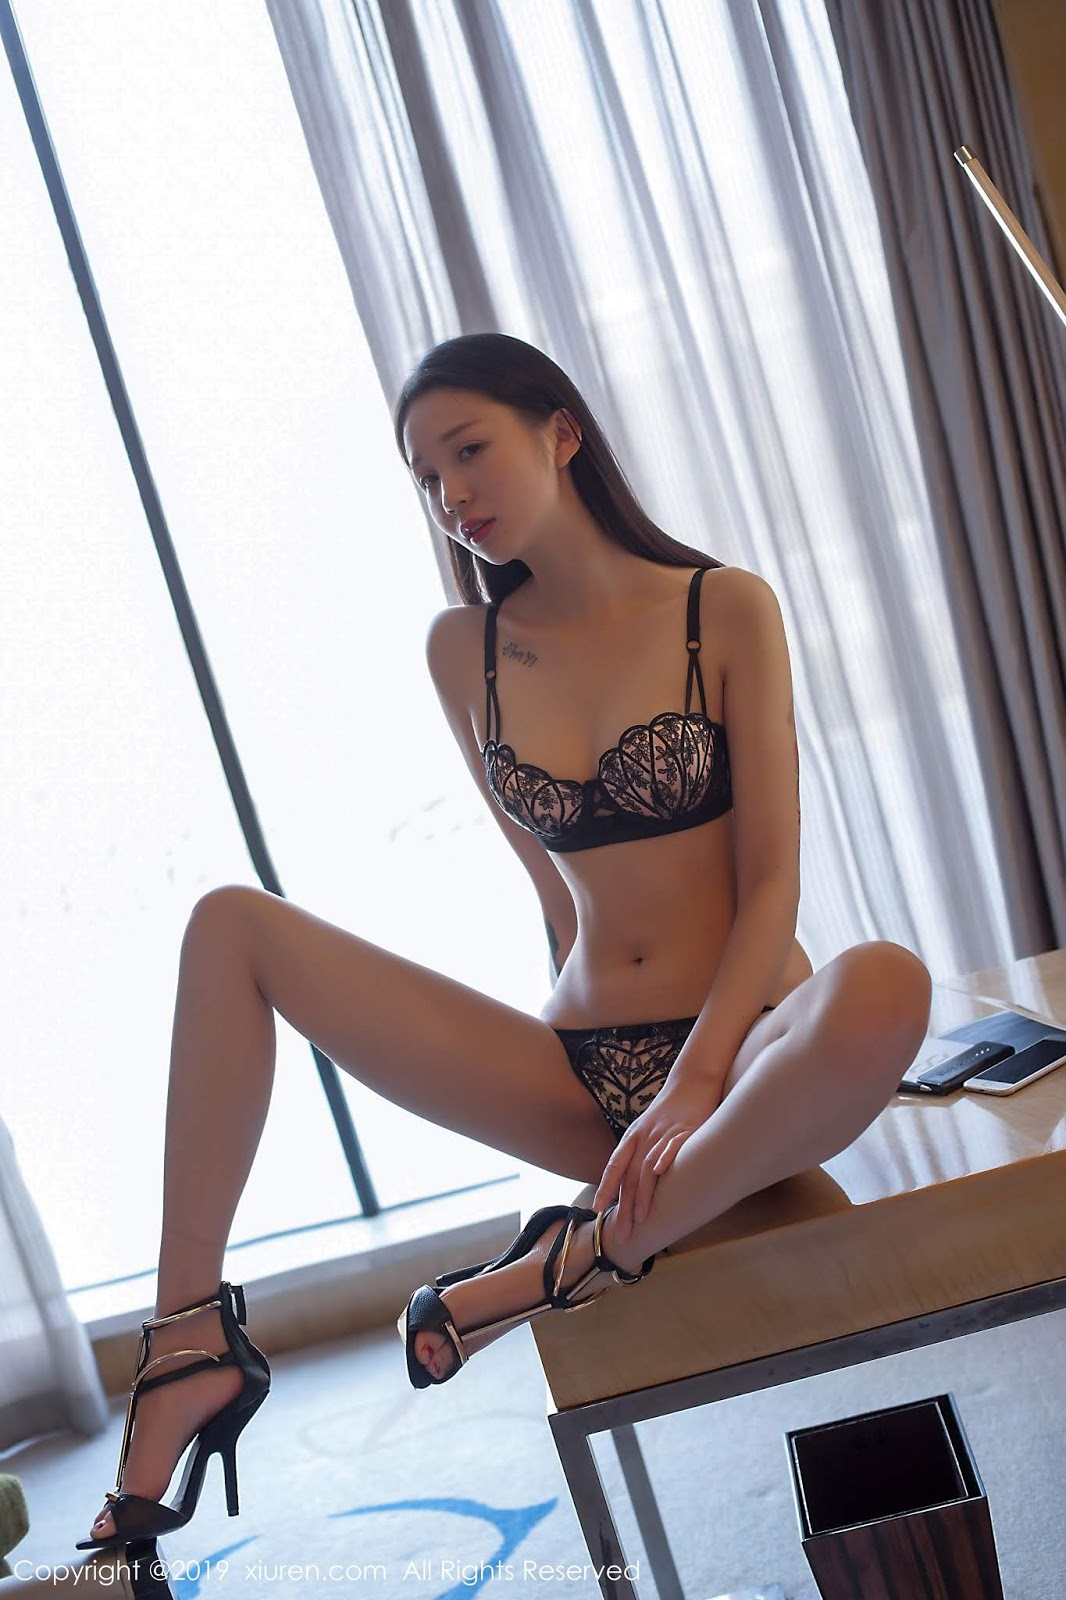 Asiaa.online No.149 Model 白沫 (Bai Mo)